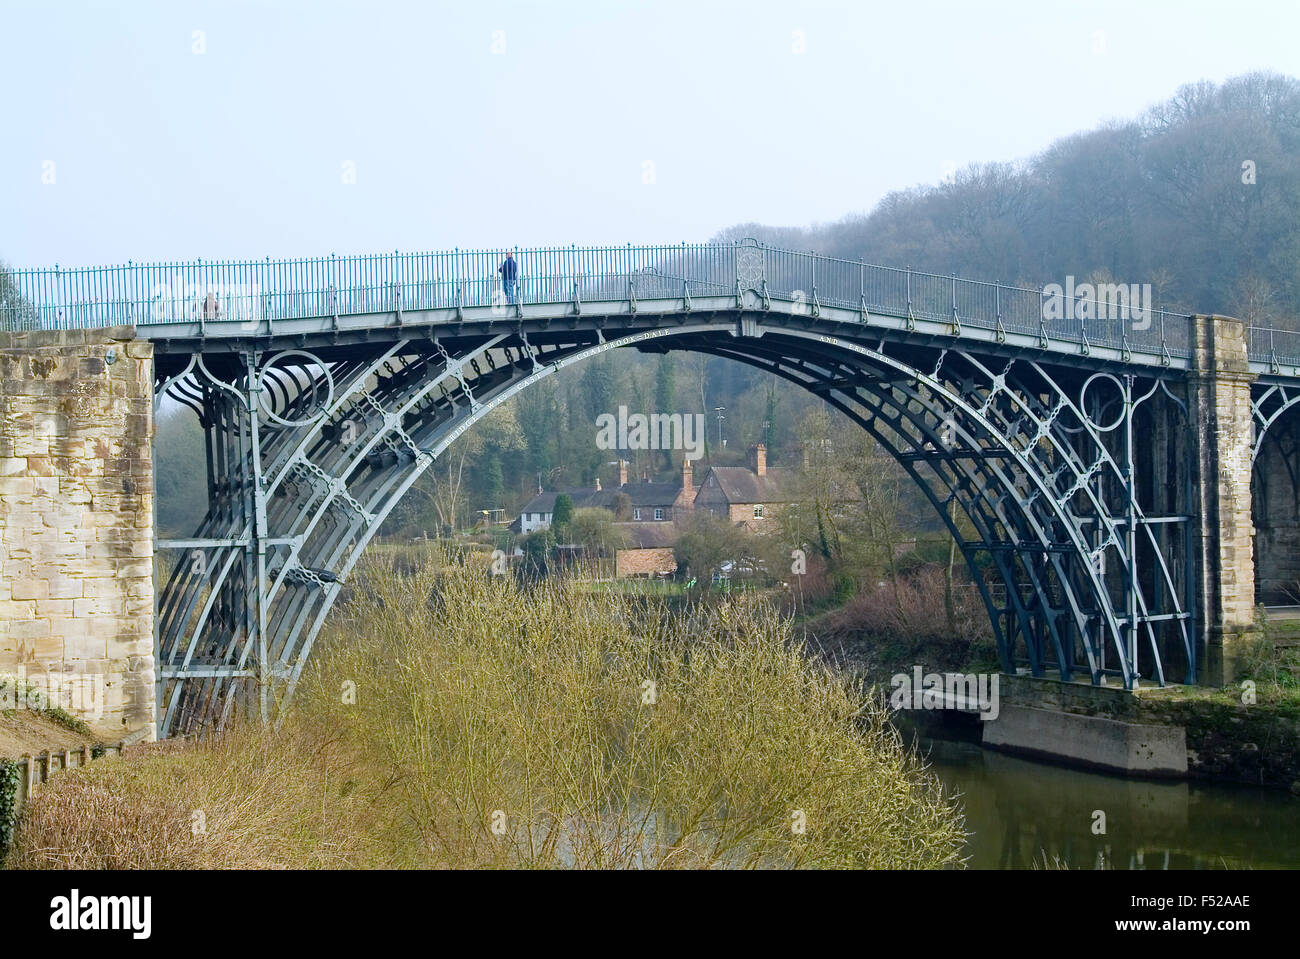 First iron bridge in the world by Abraham Darby III crossed the River Severn at Ironbridge Shropshire England UK - Stock Image